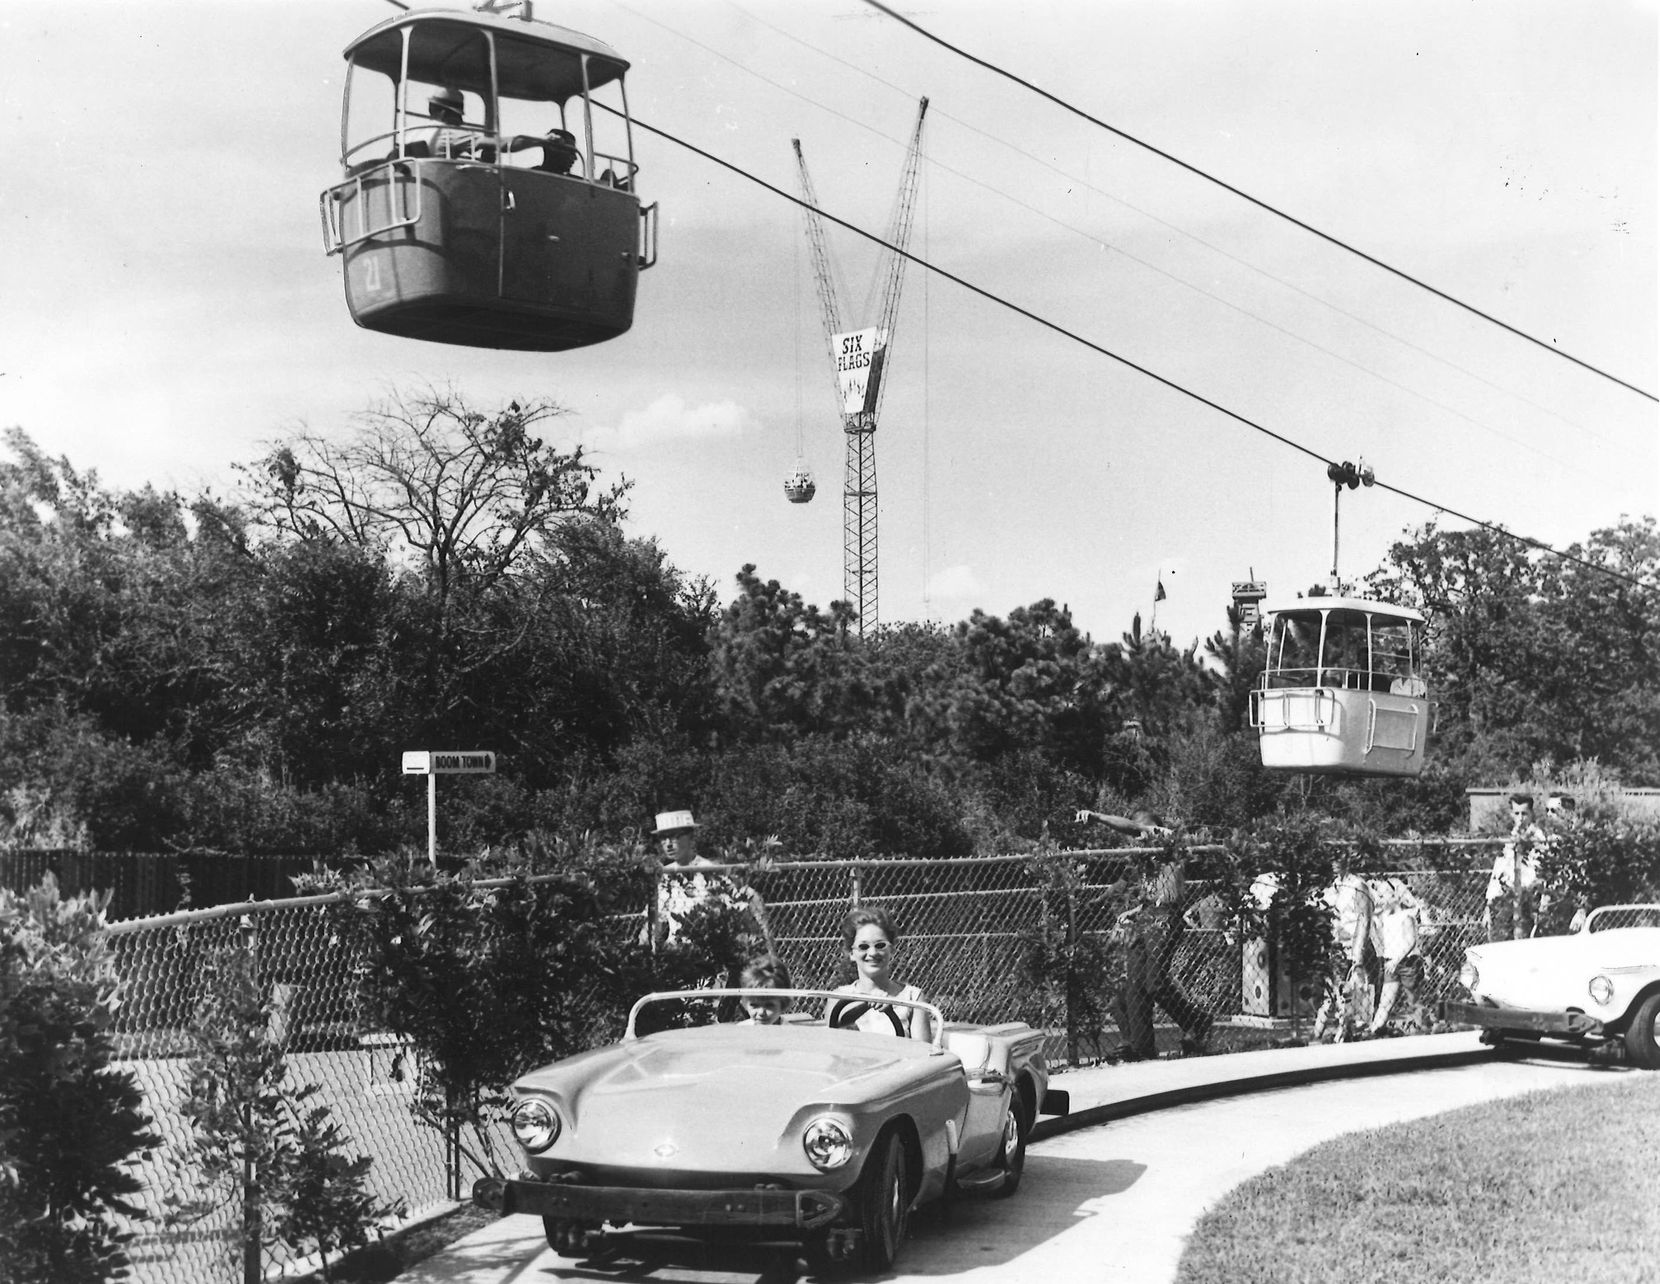 The Happy Motoring Speedway was a popular attraction at Six Flags as Patrons could slip behind the wheel of a then-futuristic, sleek sports car and drive around a modern highway that didn't involve honking  or passing cars as they could only ride in the middle lane.